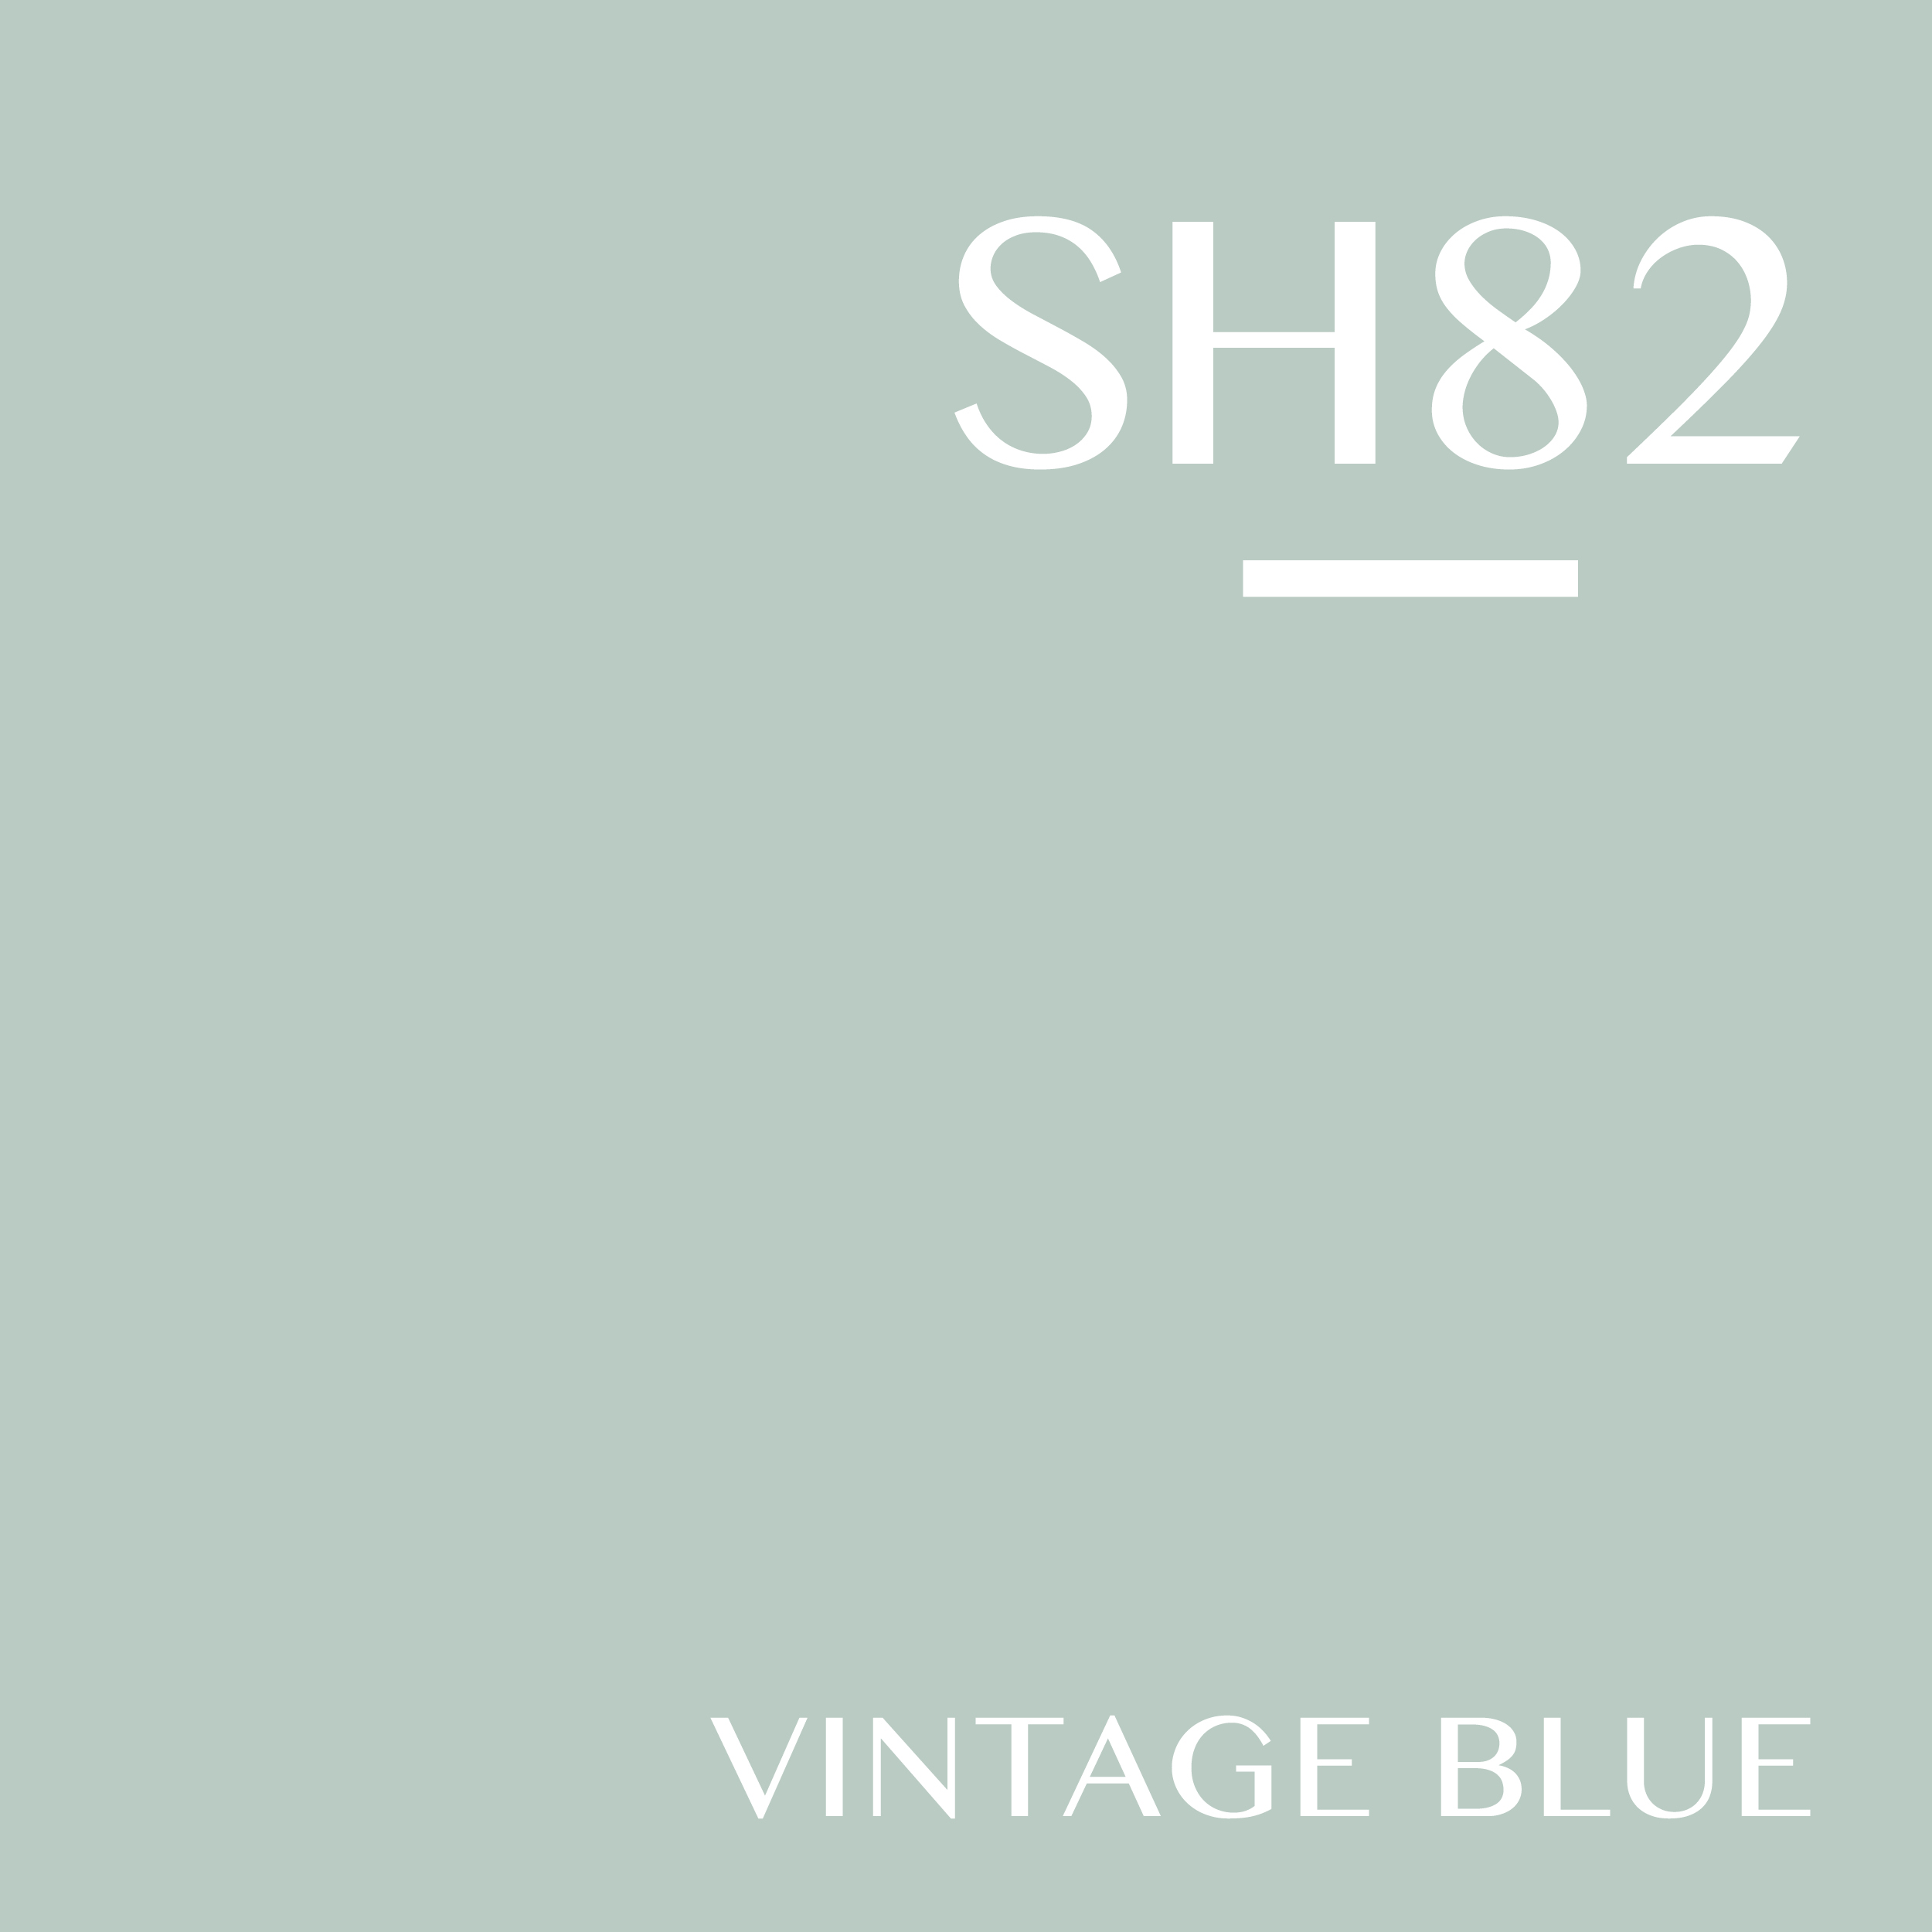 SHADE collection color blocks82